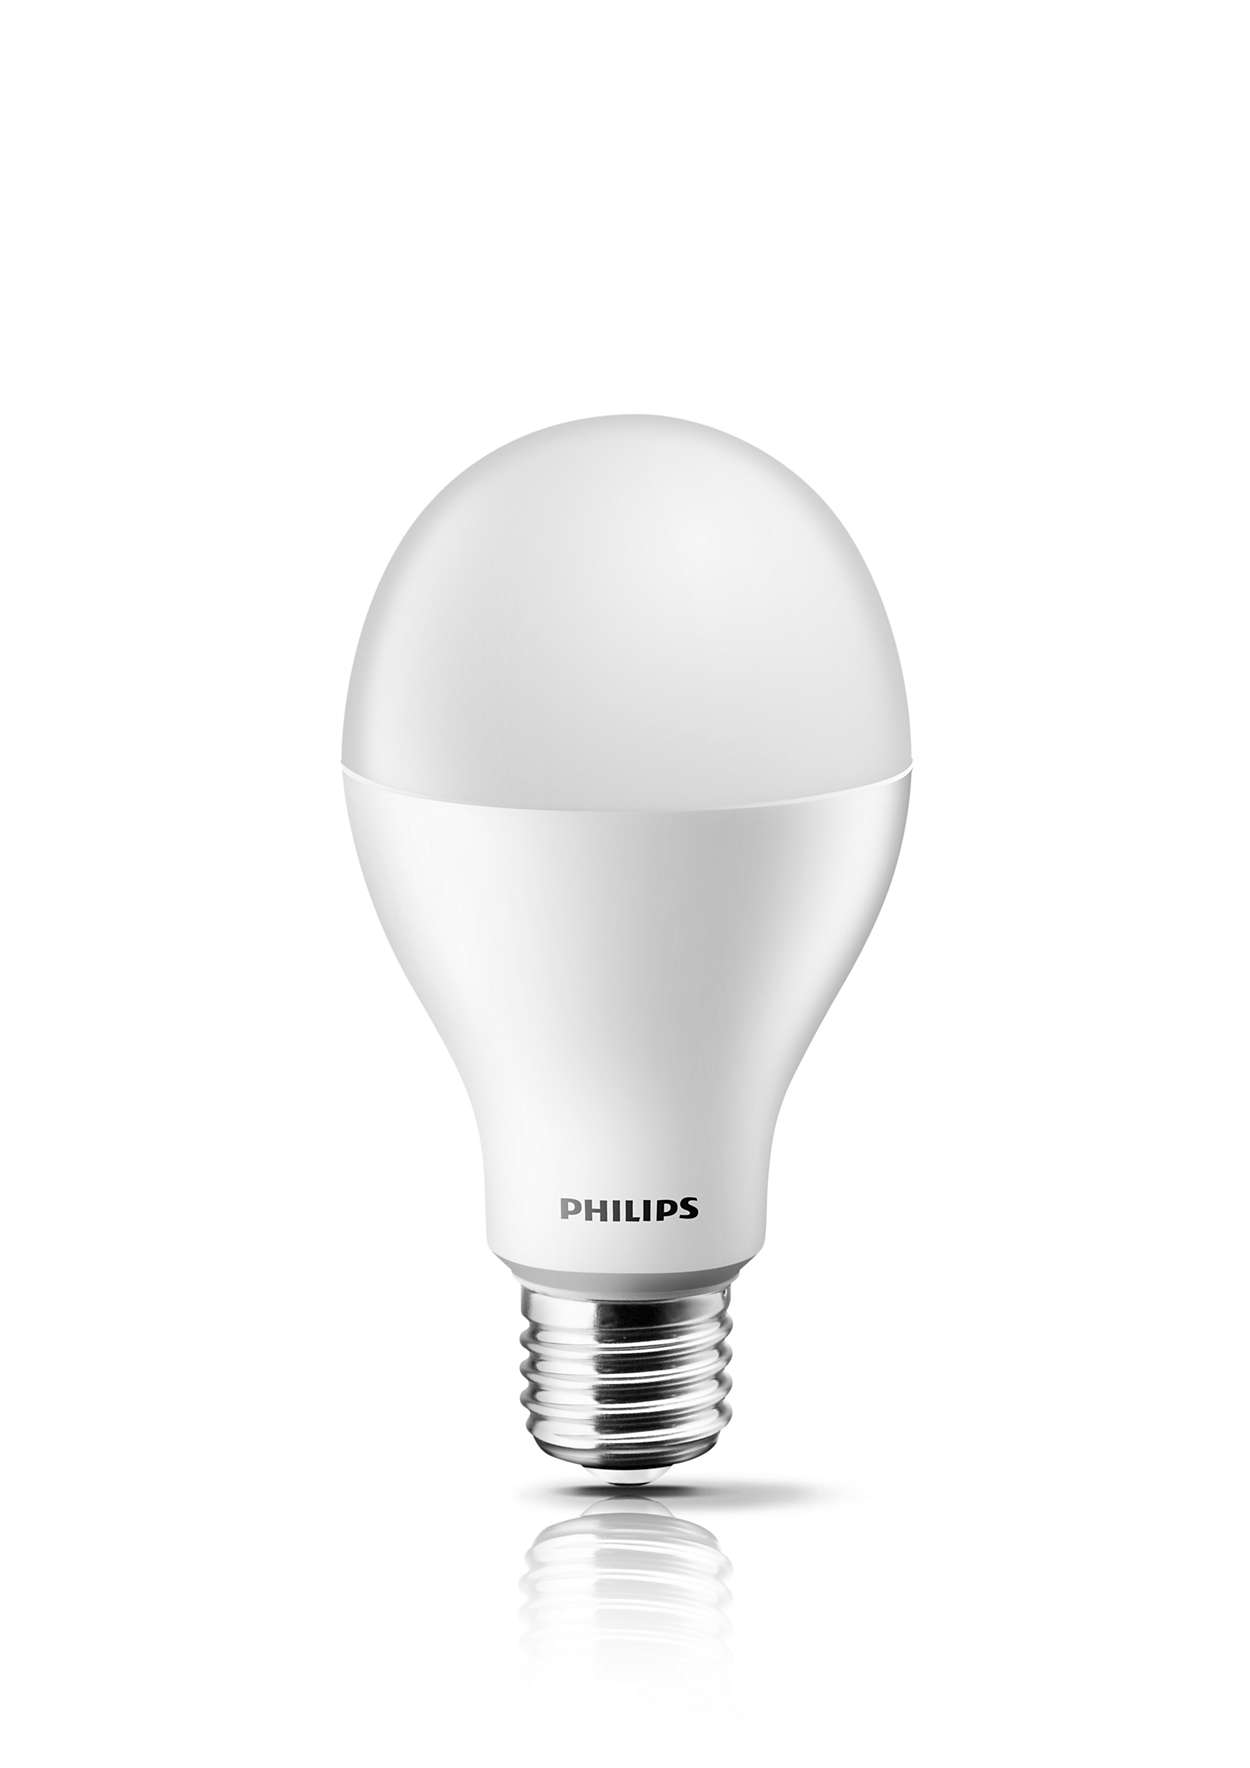 Led bulb 8718291753339 philips download image parisarafo Gallery